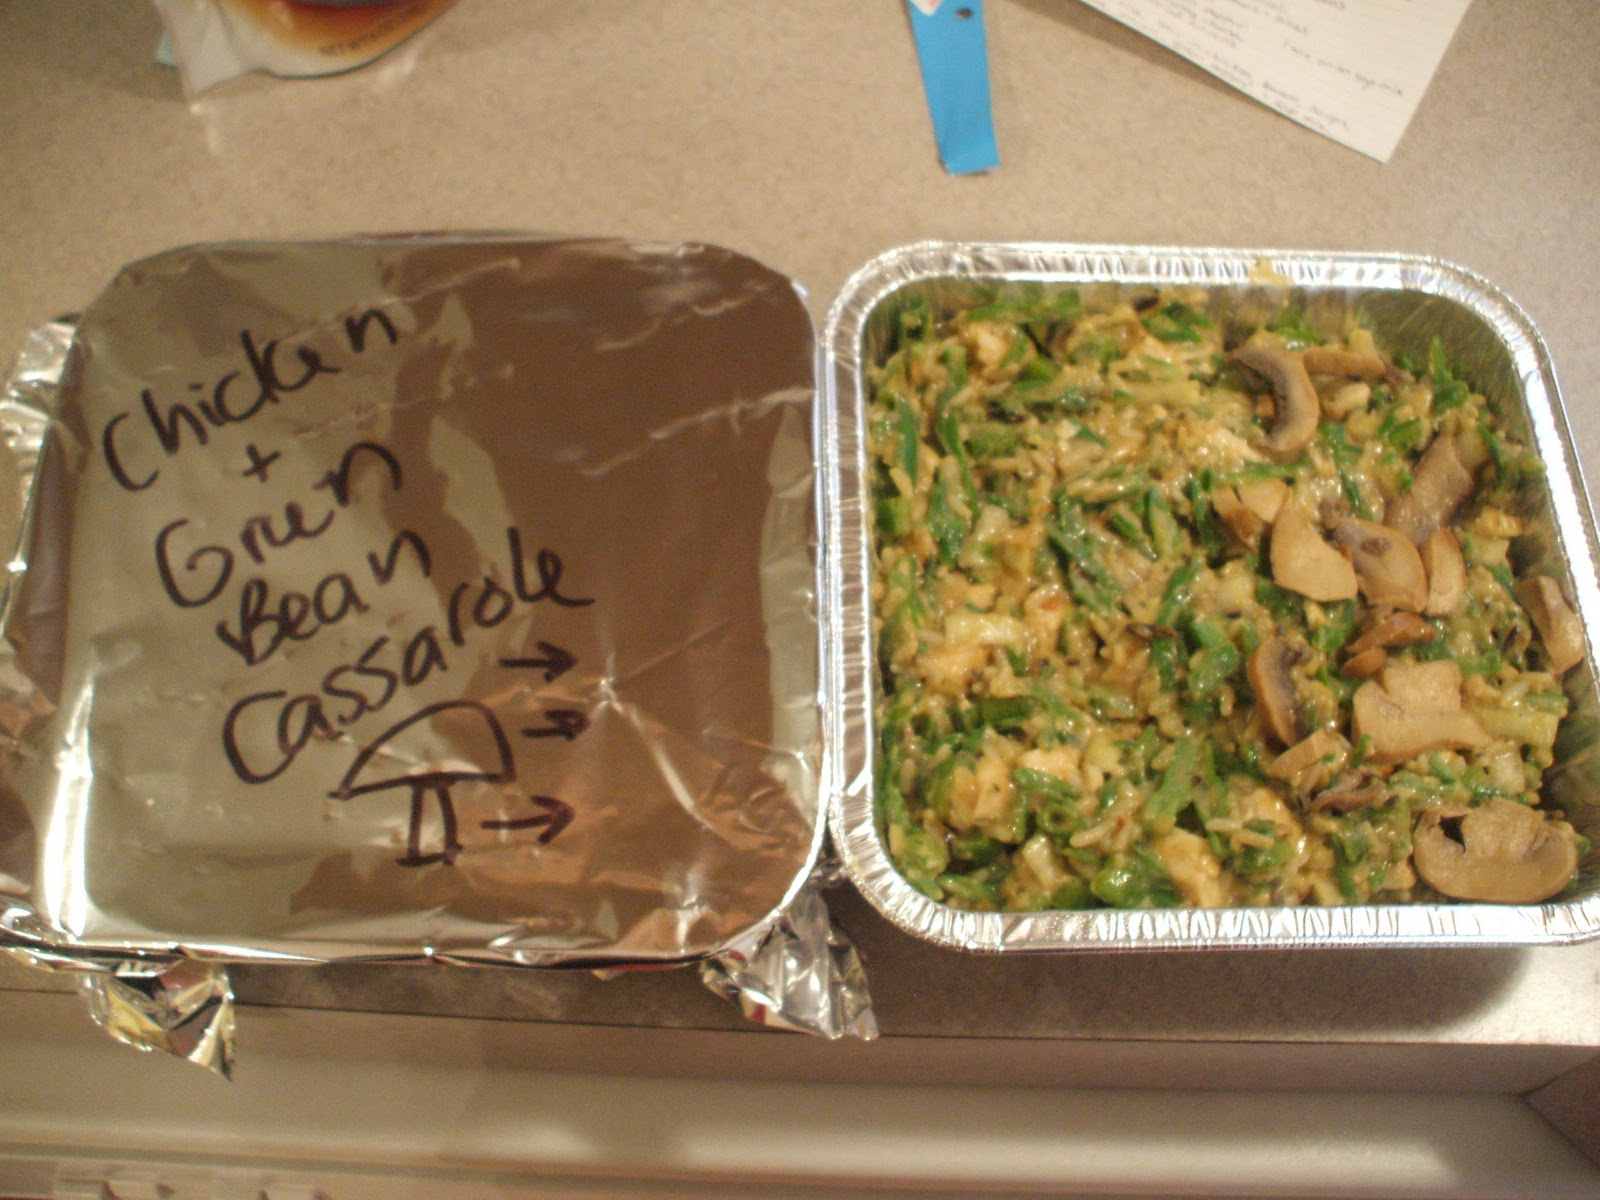 ... casserole. Label the foil to include the name of the casserole